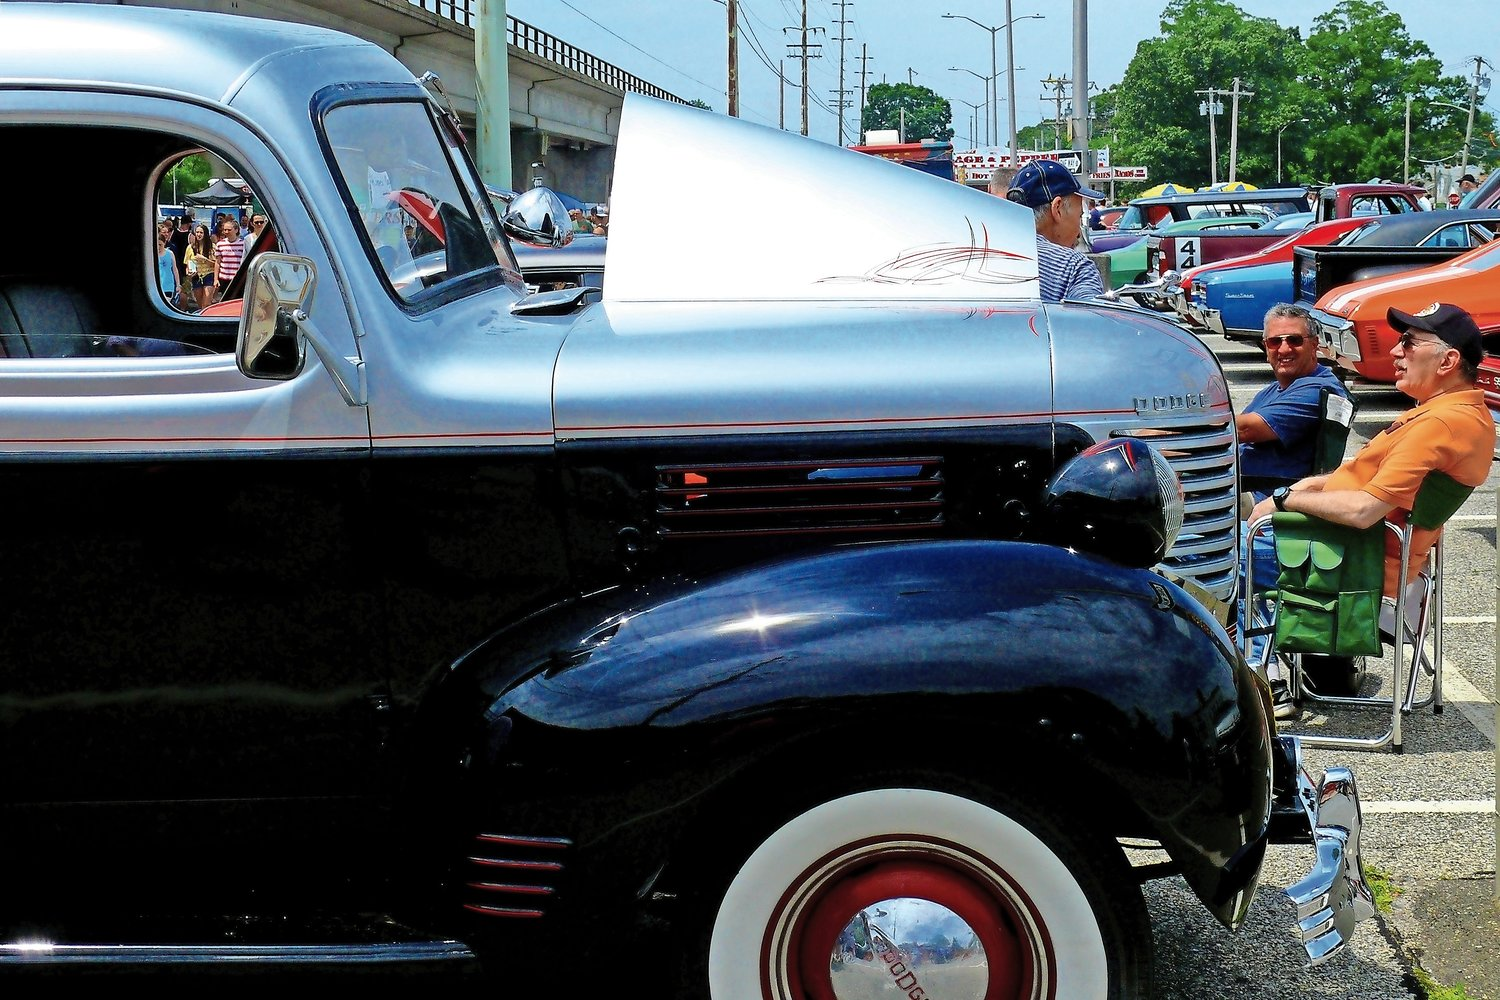 At the car show's close, classic car owners traded stories while their steers baked in the sunlight with their bright and colorful paint jobs.